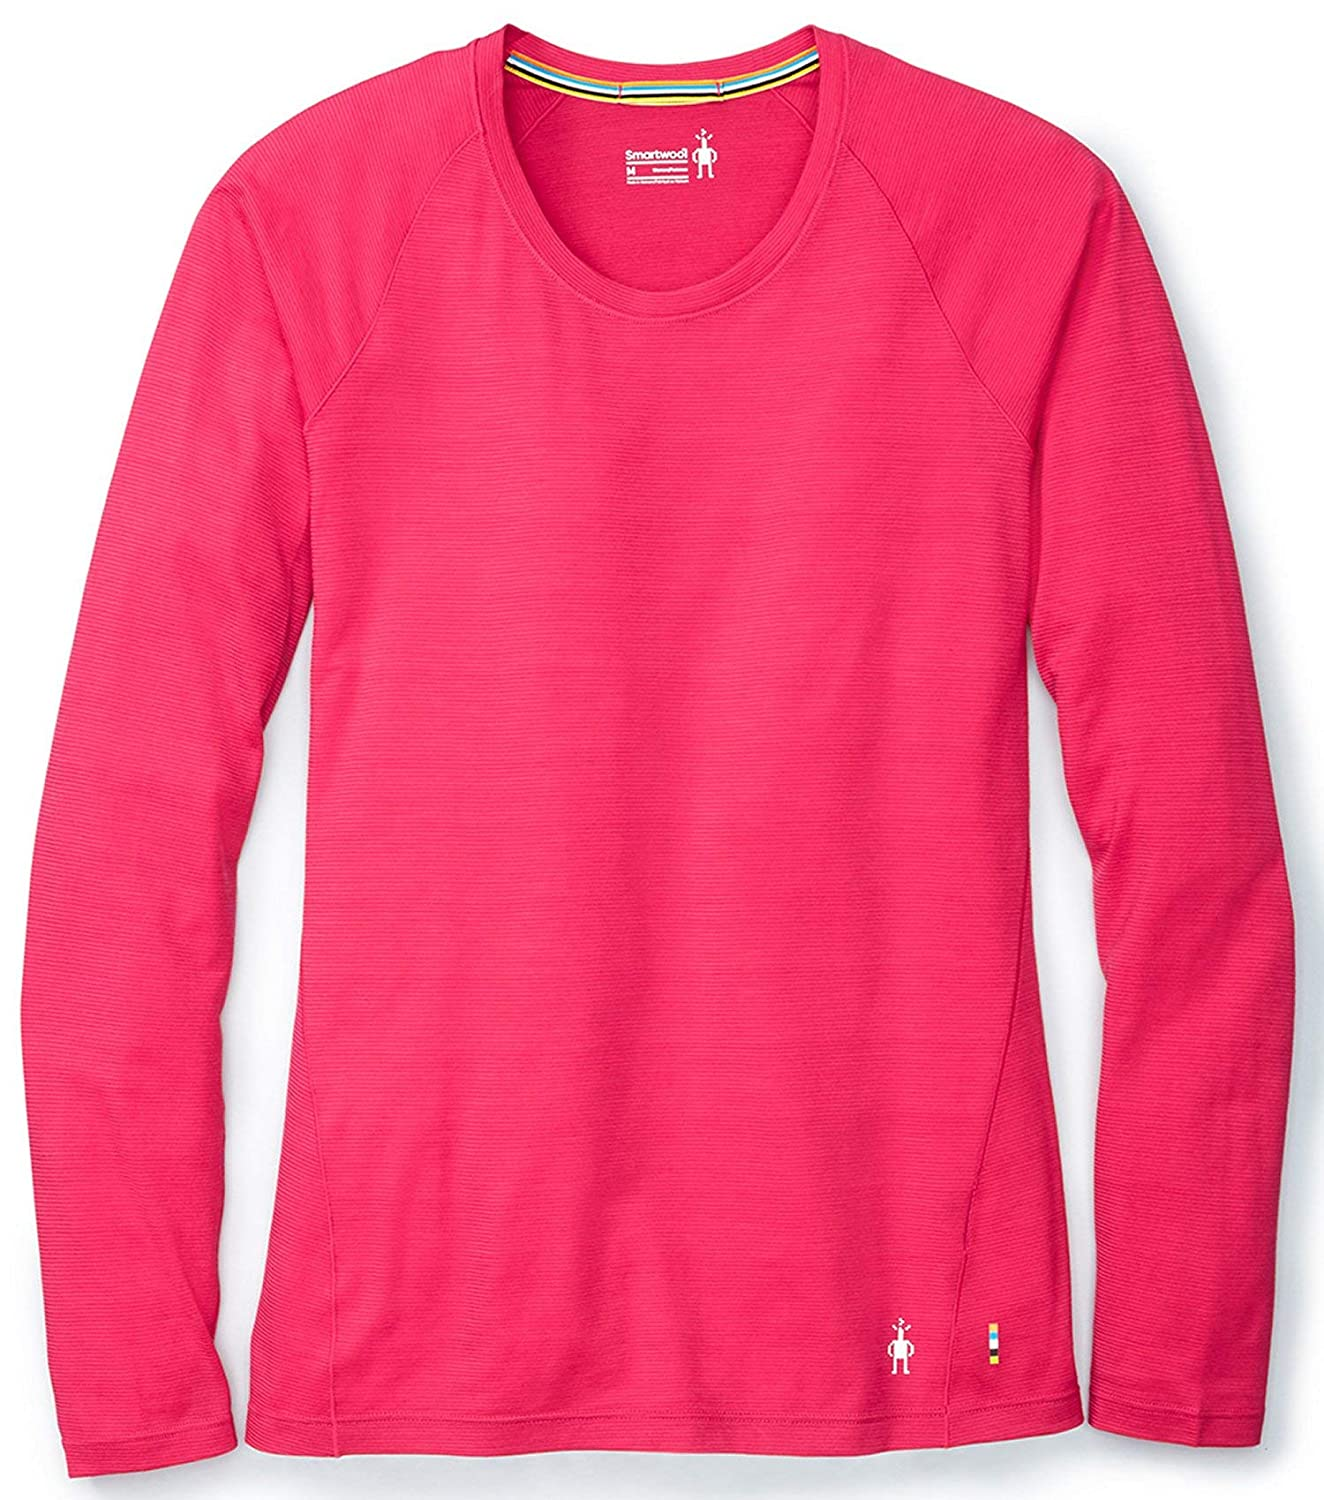 Smartwool Damen merino150 Muster langärmelige Top Base Layer